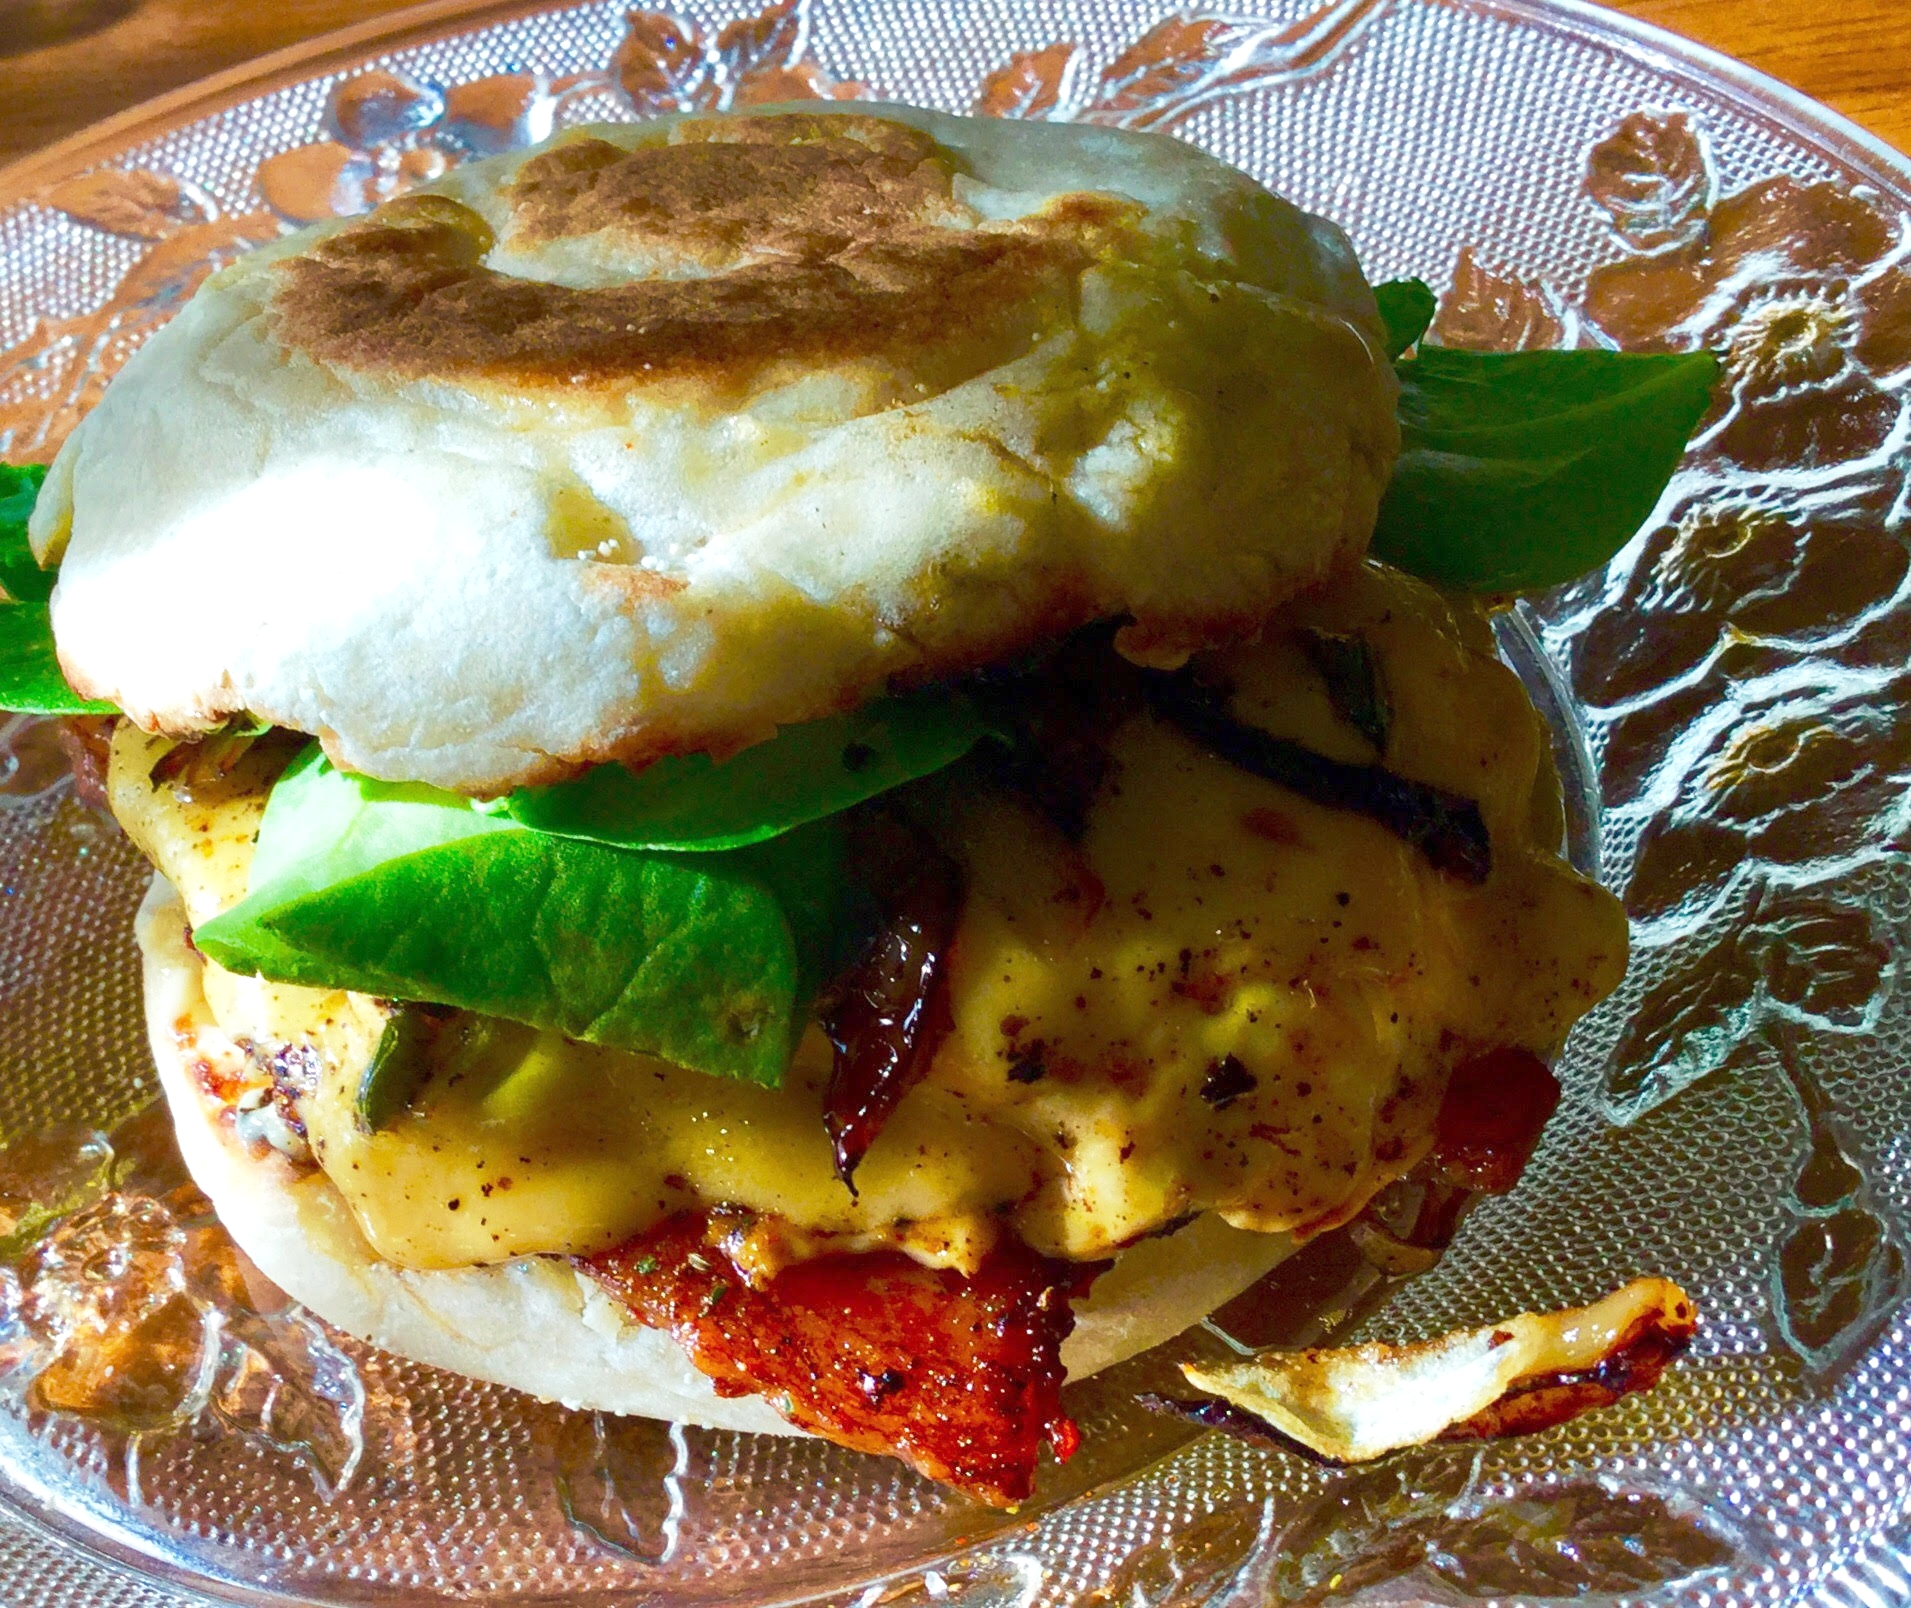 Bacon, Egg & Cheese with Sauteed Onions & Peruvian Green Chili Sauce on an English Muffin! Oh, WOW!